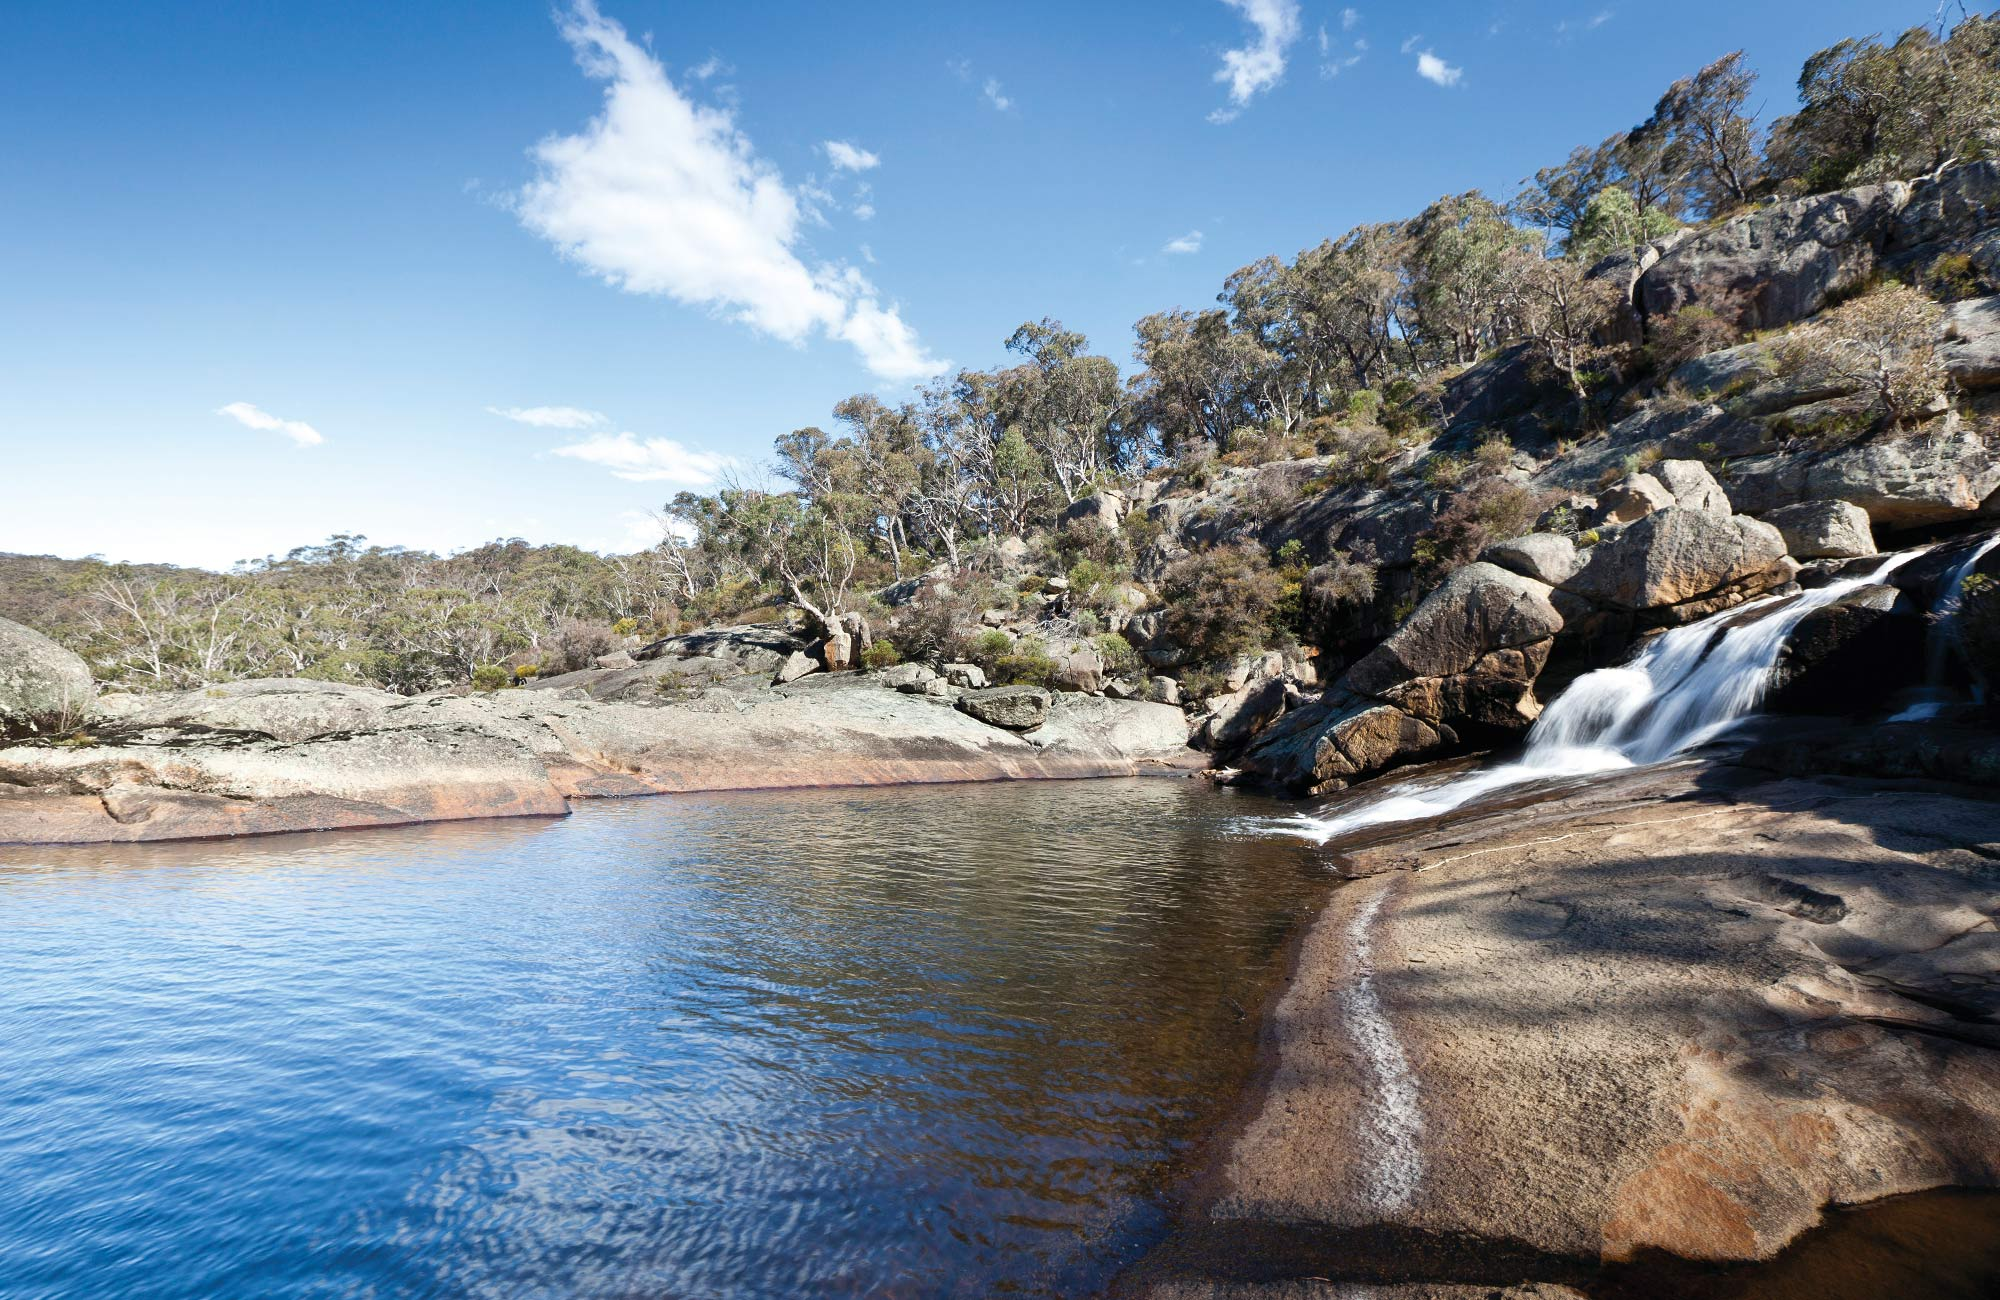 Water cascades down rocks into a waterhole, seen from Cascades walking track in Wadbilliga National Park. Photo: Luca Boyd/DPIE